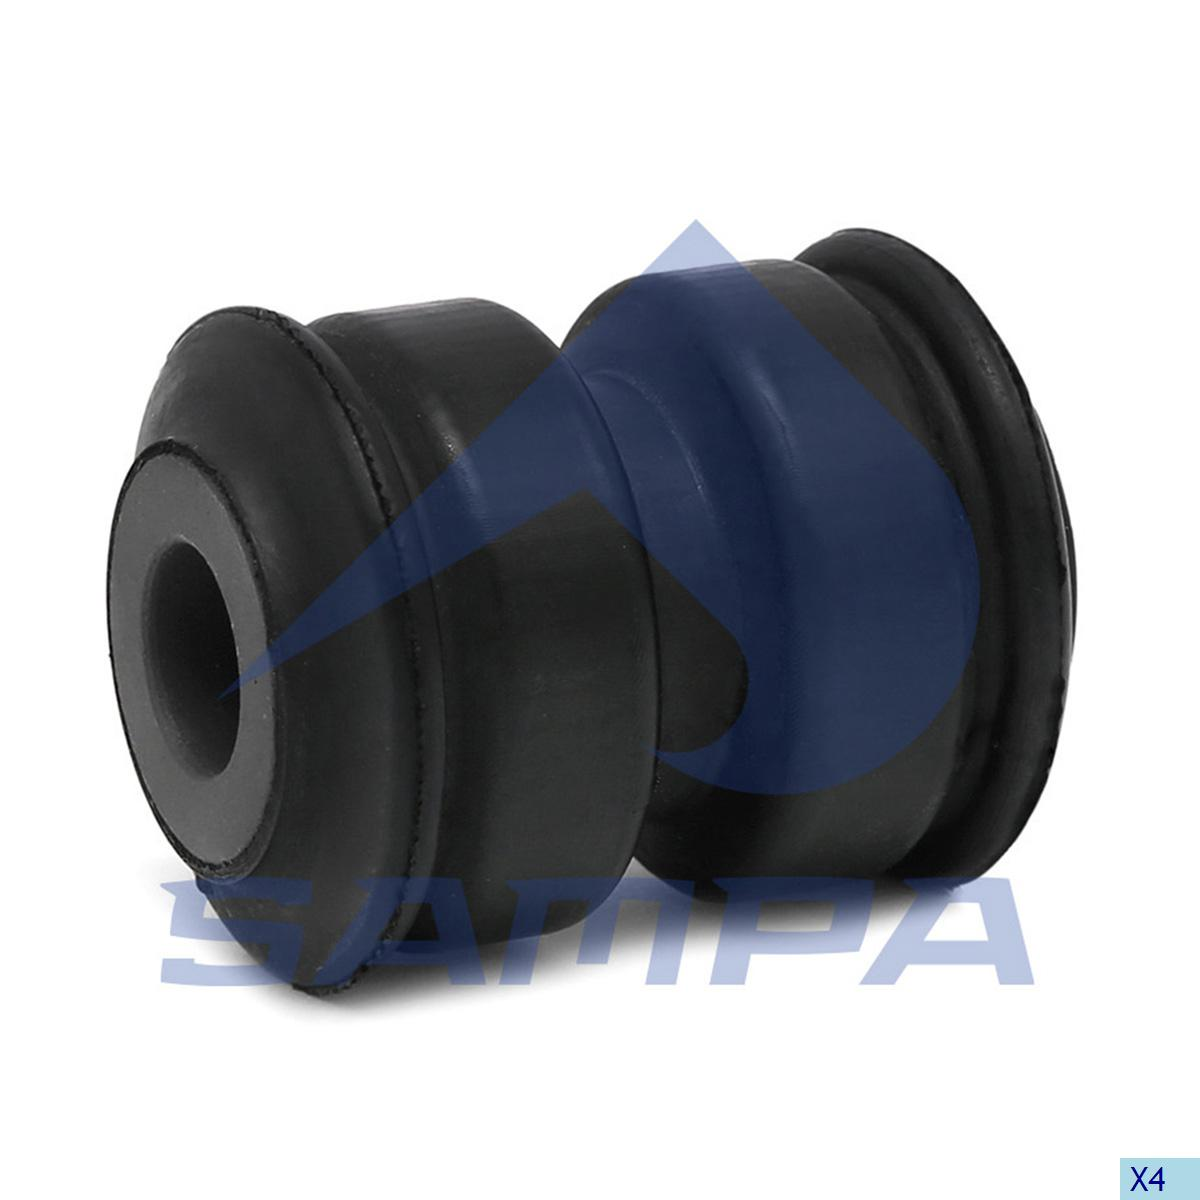 Rubber Bushing, Spring, R.V.I., Suspension